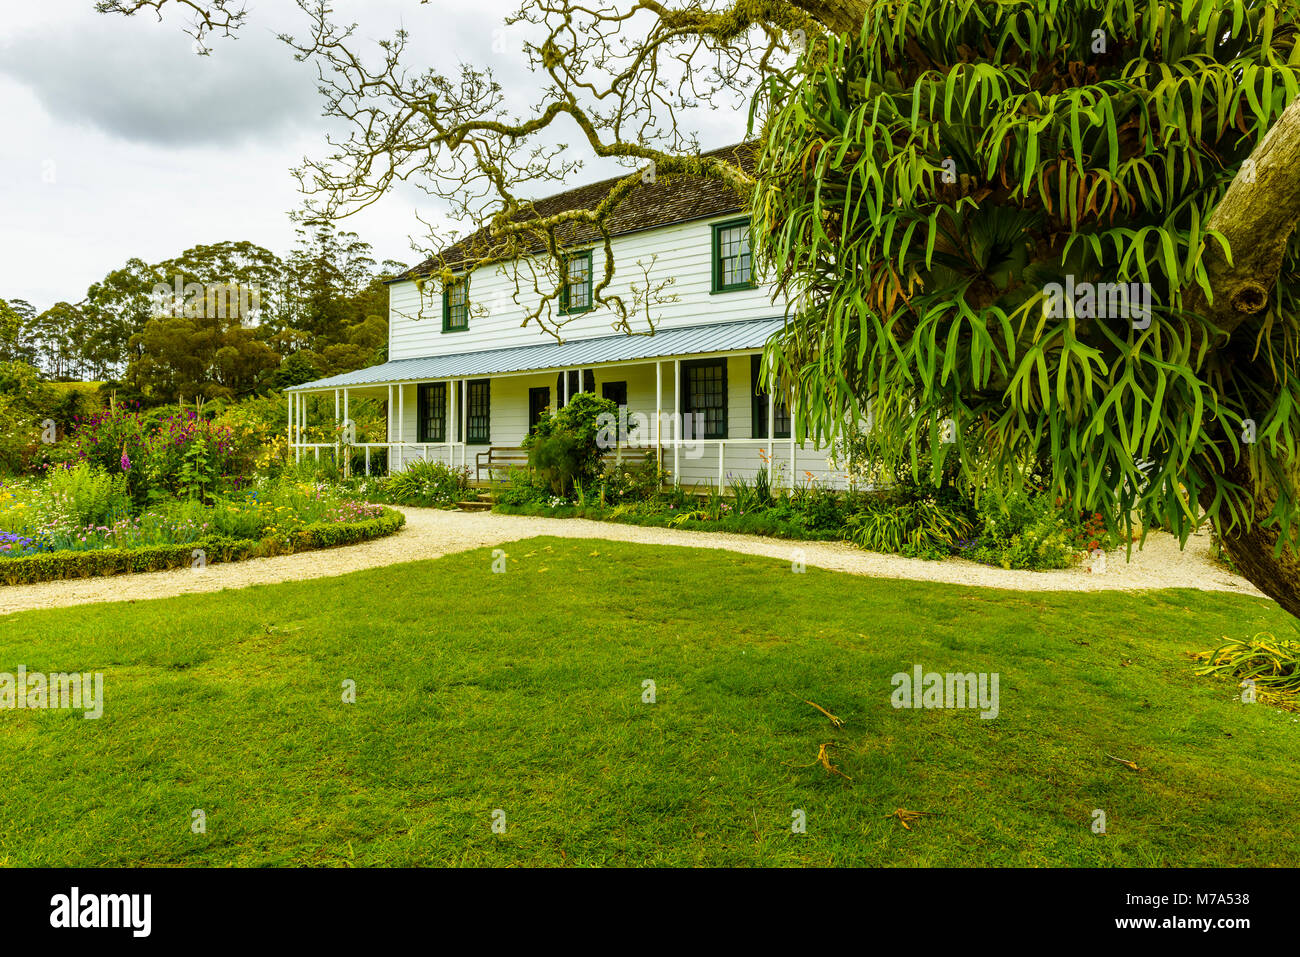 The Mission House, also called the Kemp House, Kerikeri, North Island, New Zealand. It is the oldest extant wooden Stock Photo